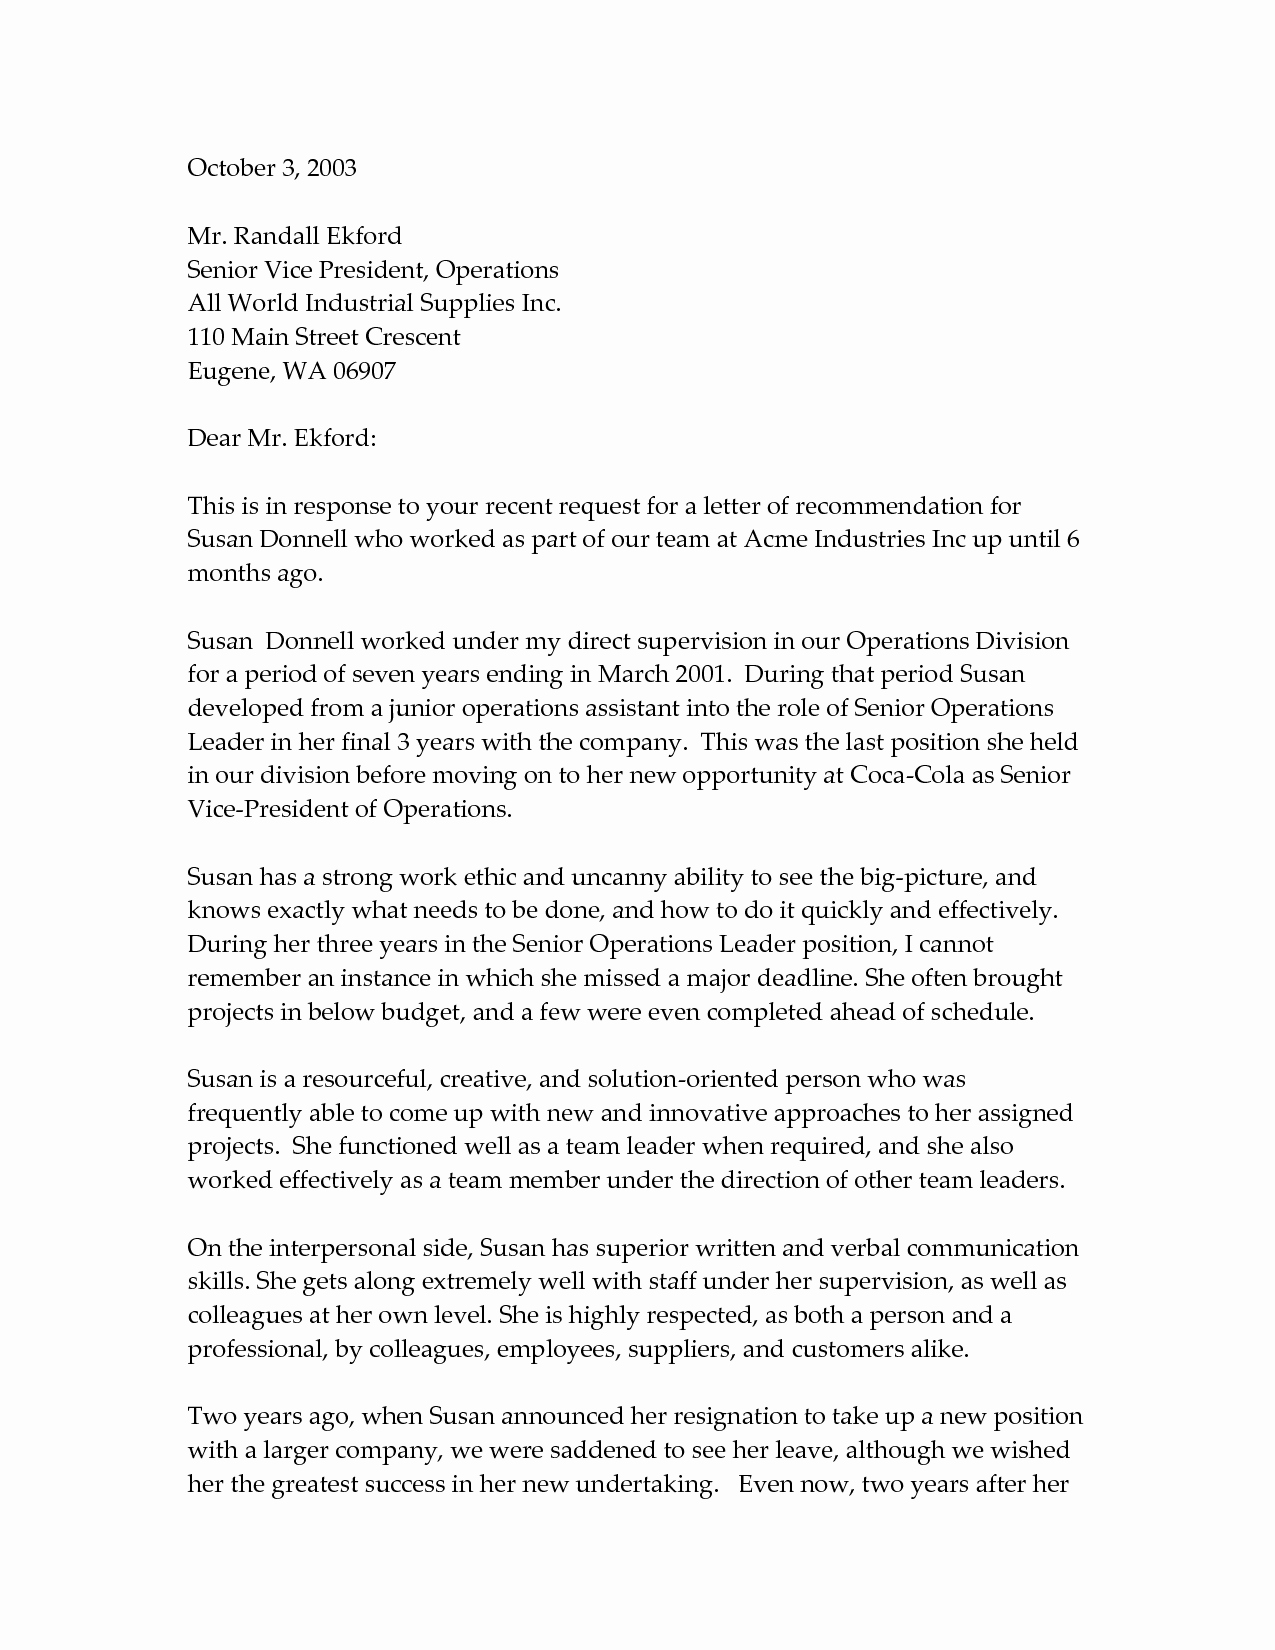 Professional Reference Letter Template Beautiful Best S Of Free Sample Business Letter